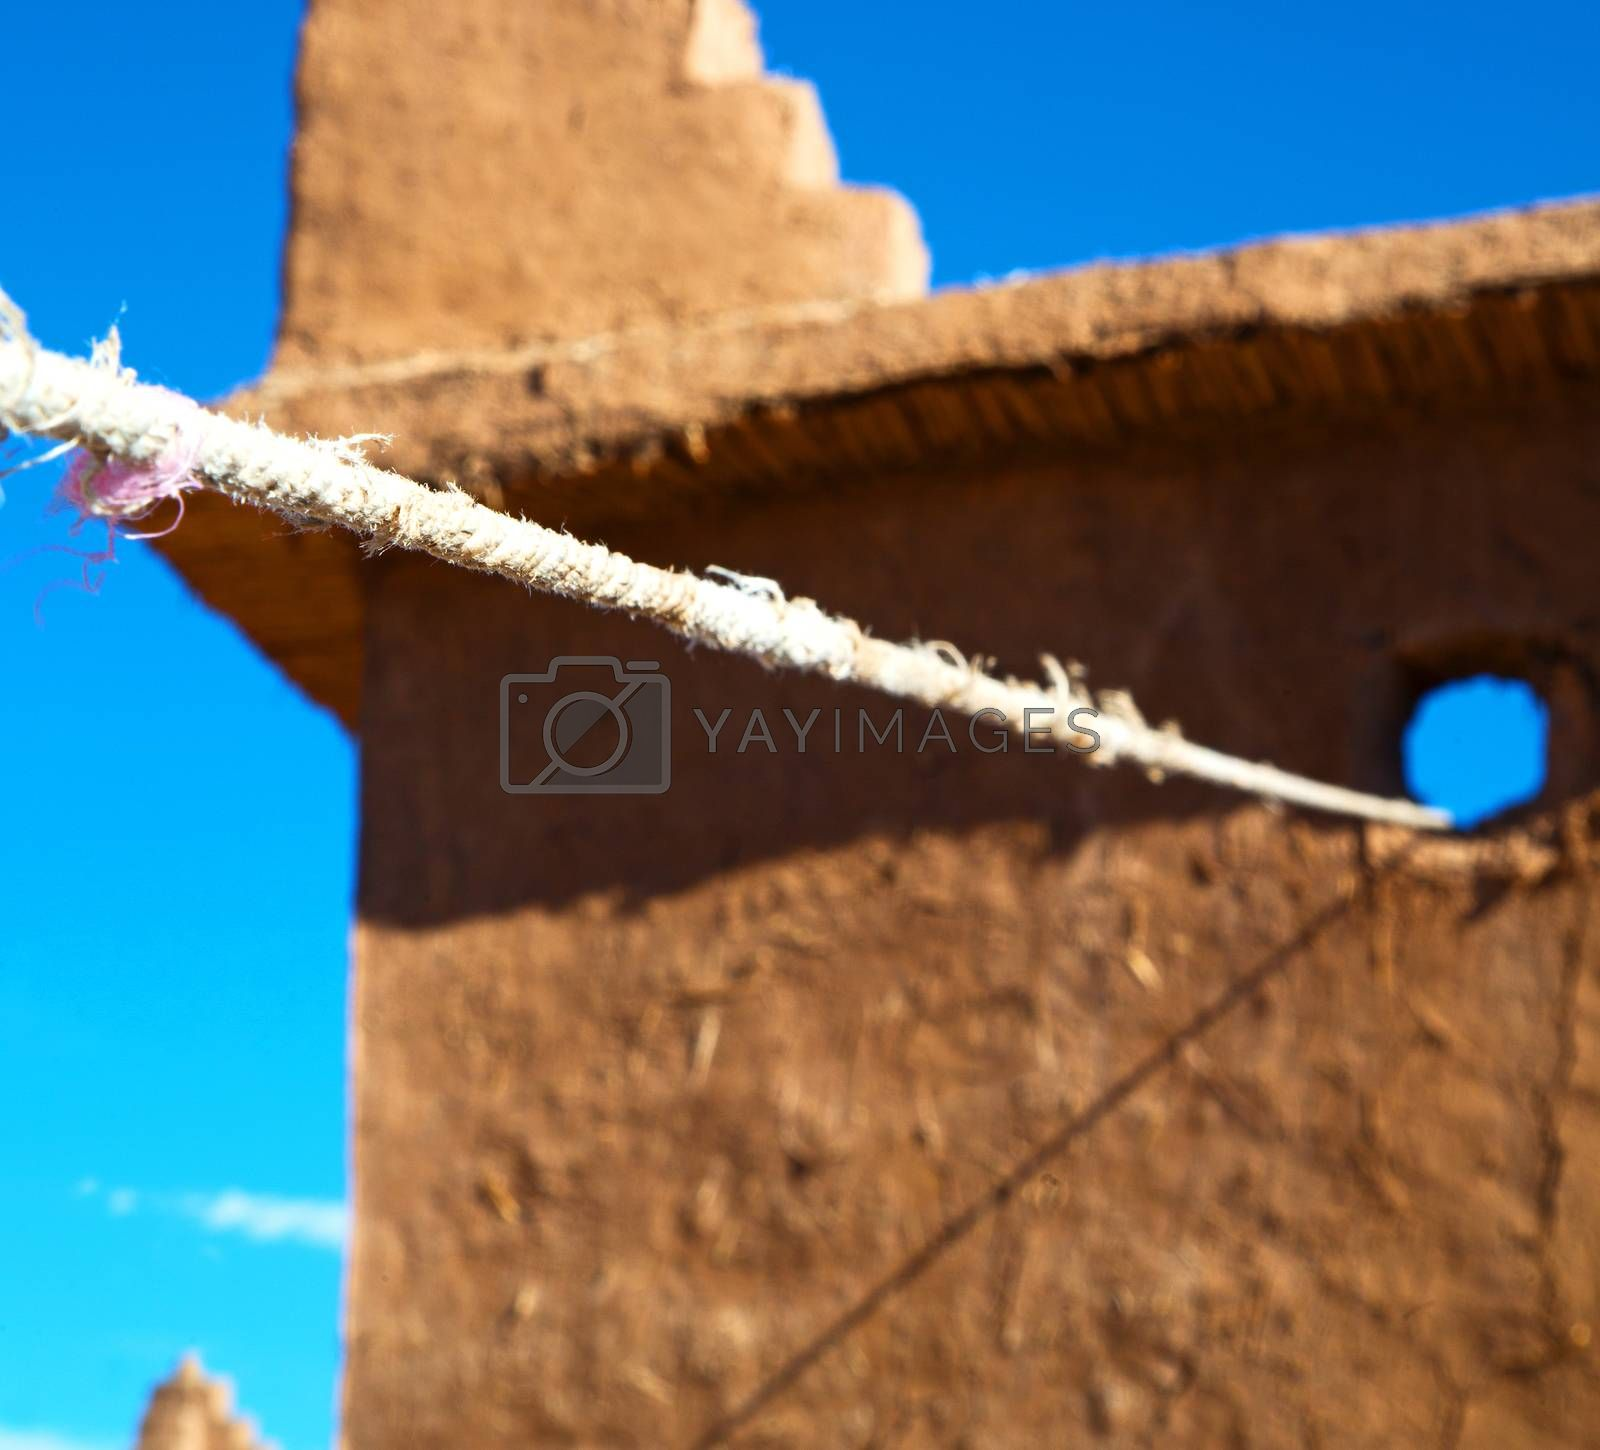 Royalty free image of moroccan old wall and brick in antique city by lkpro